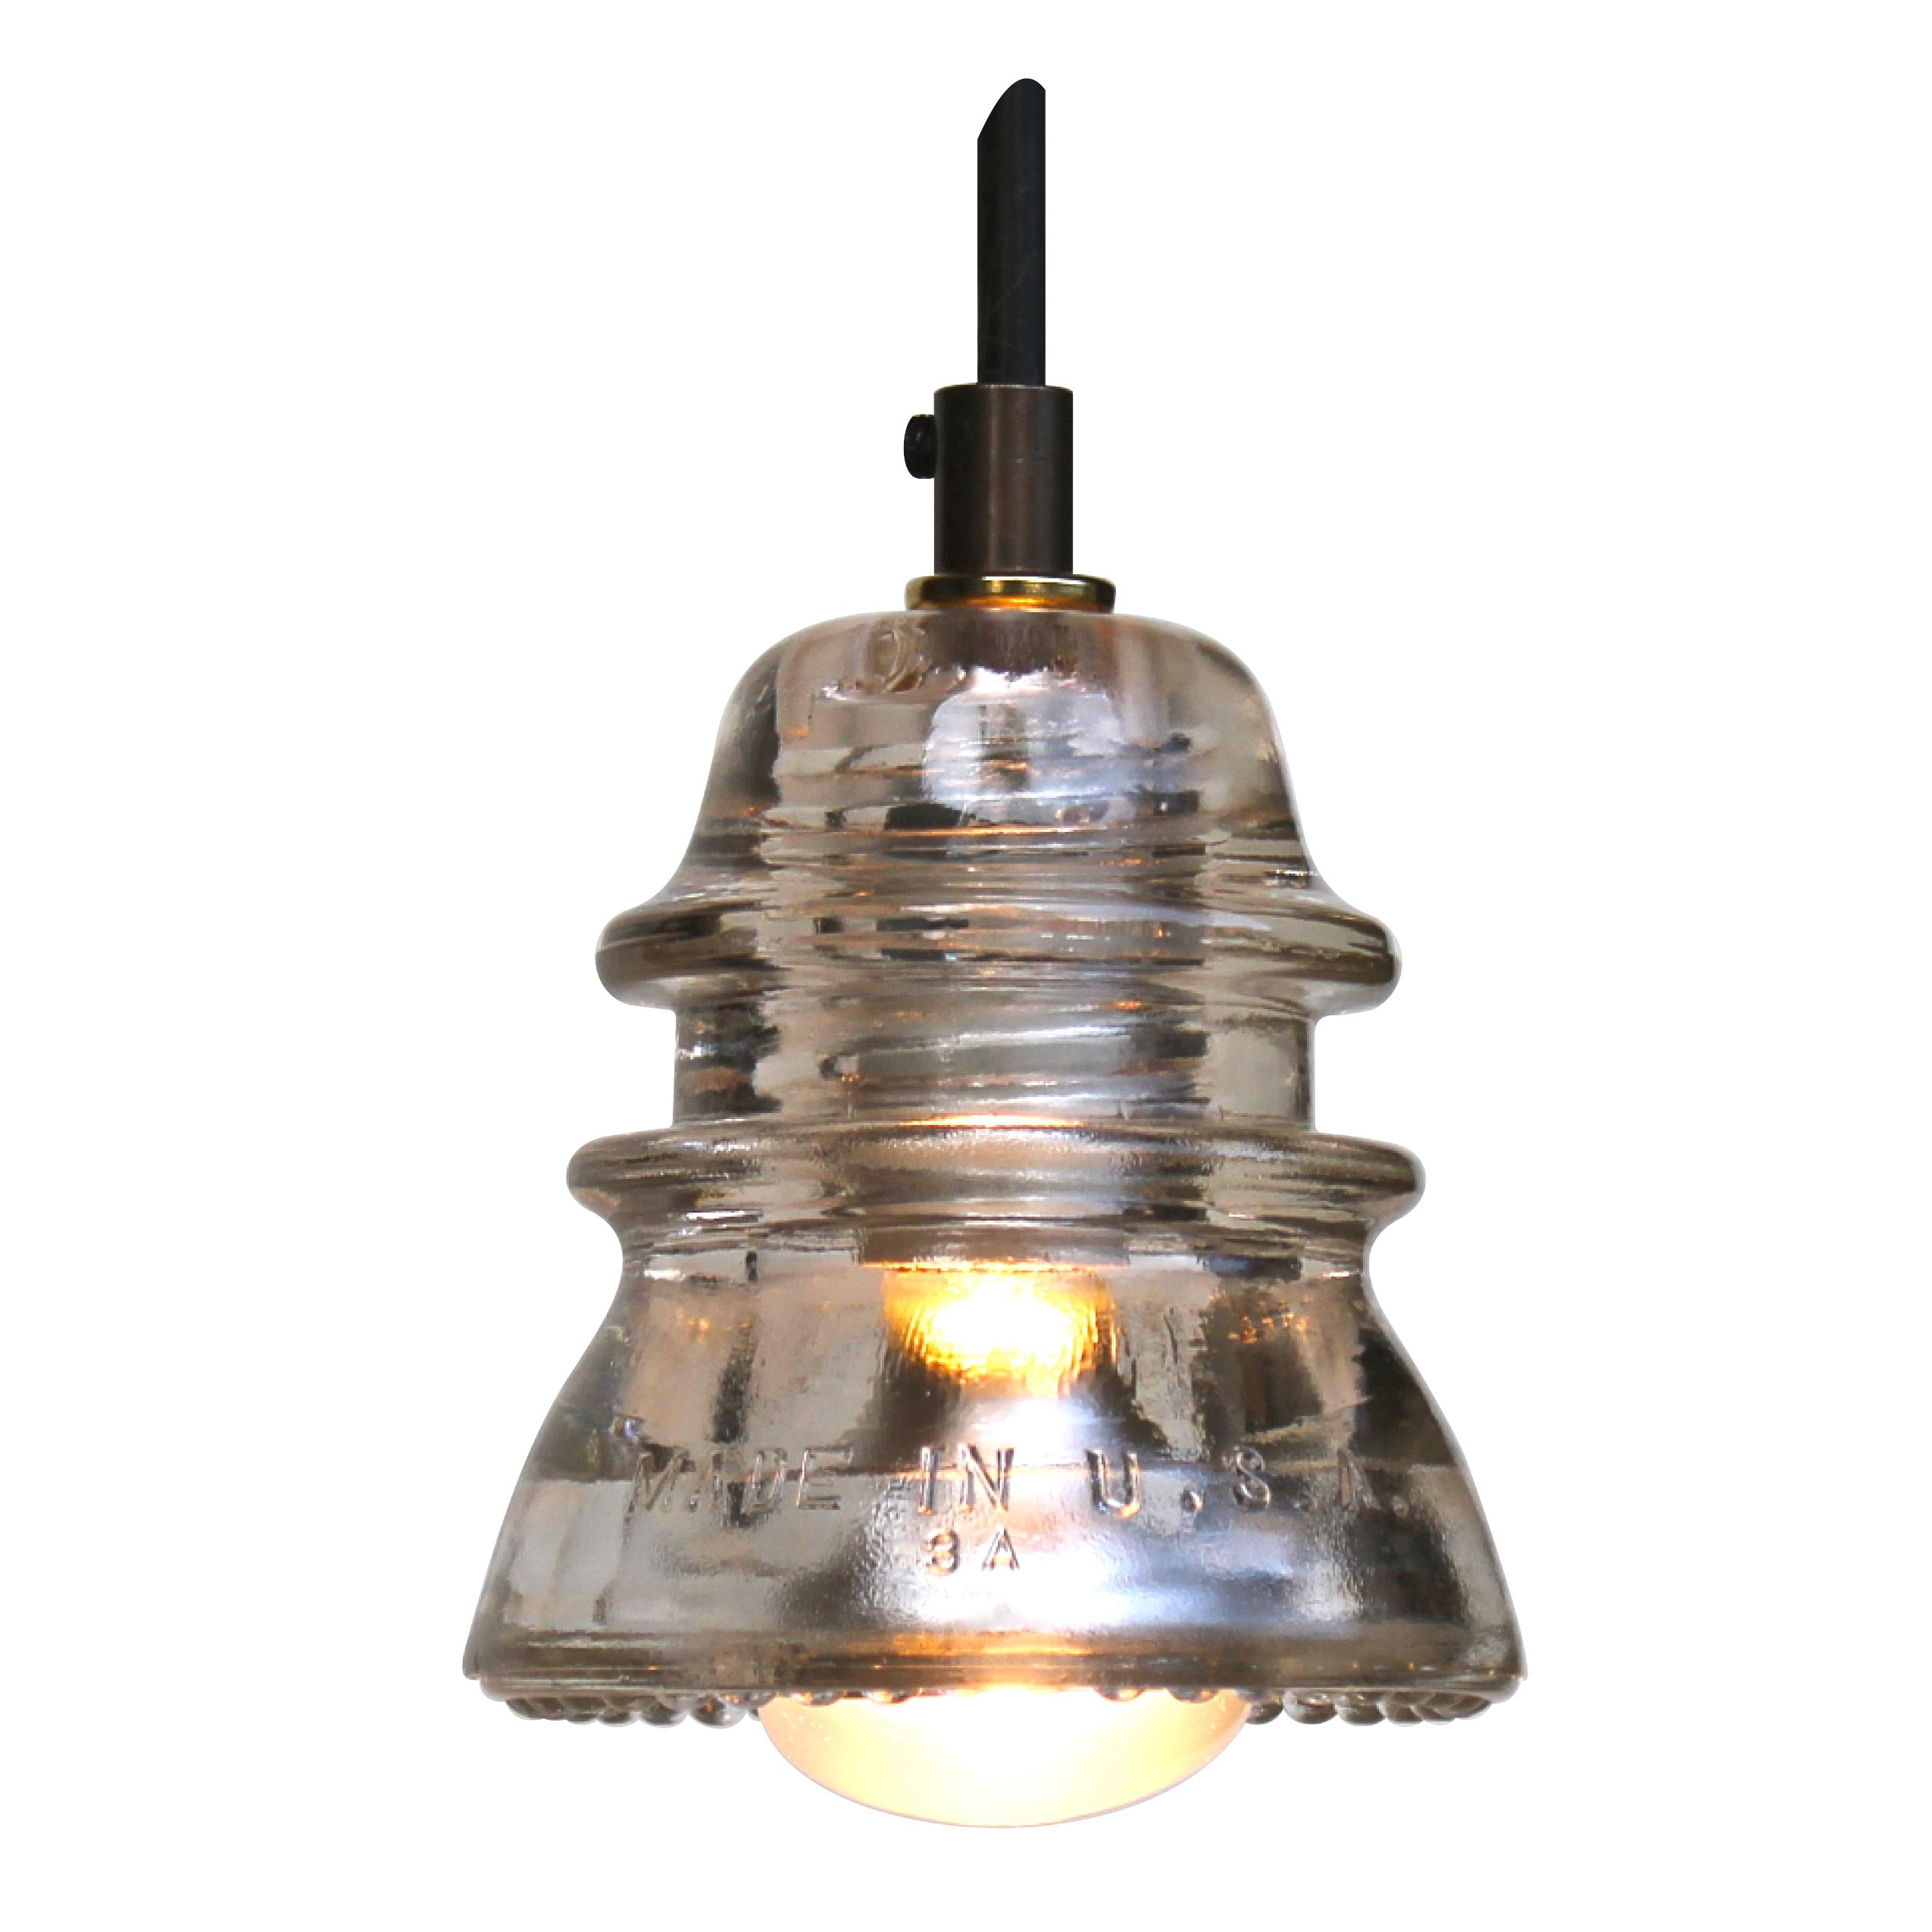 aan crowdyhouse bone china shop on pendant lamp light